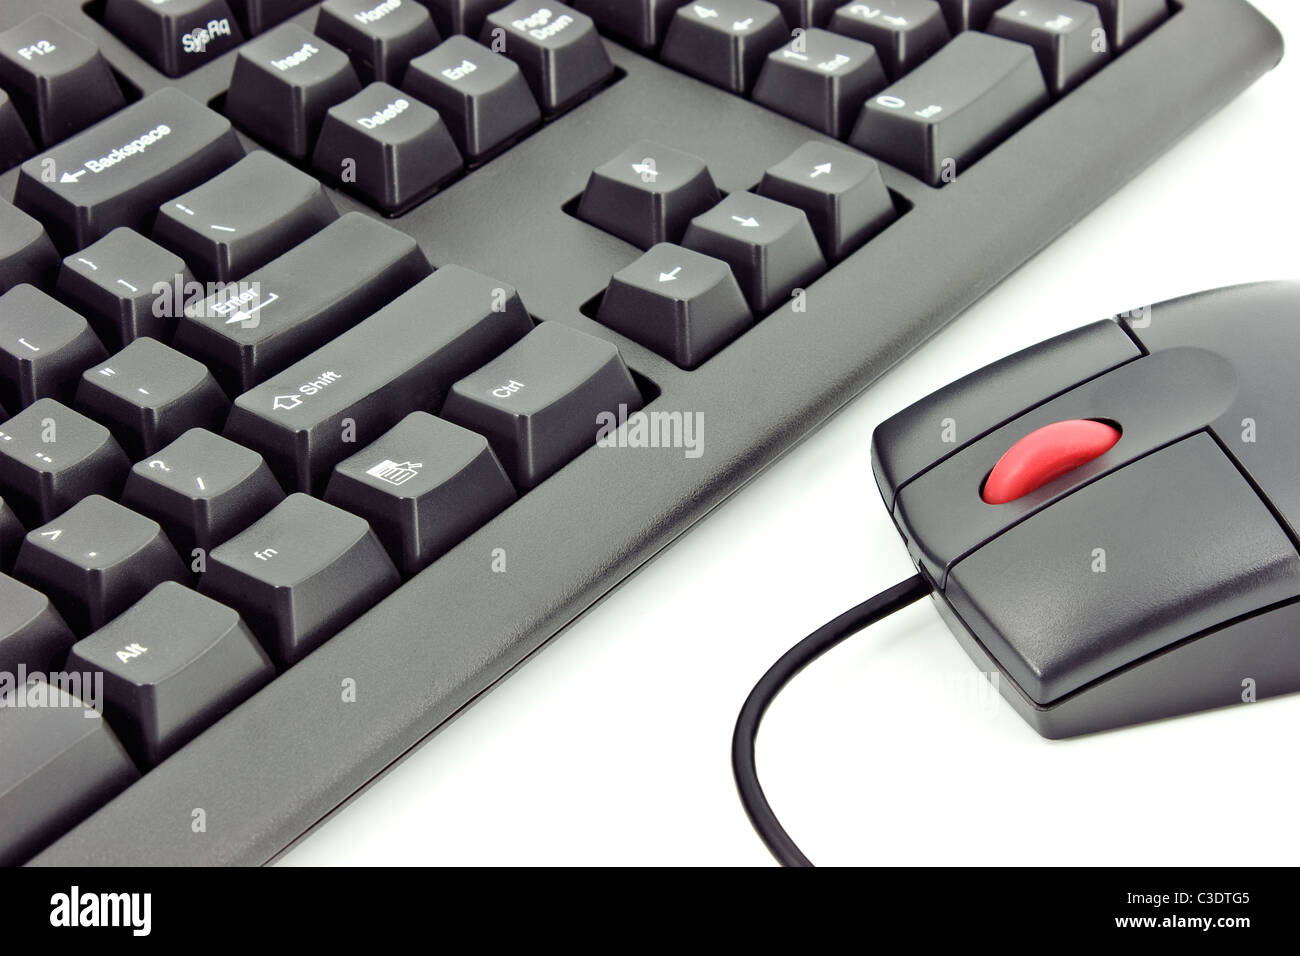 Close up of a black mouse with a red whel and a keyboard isolated on white Stock Photo